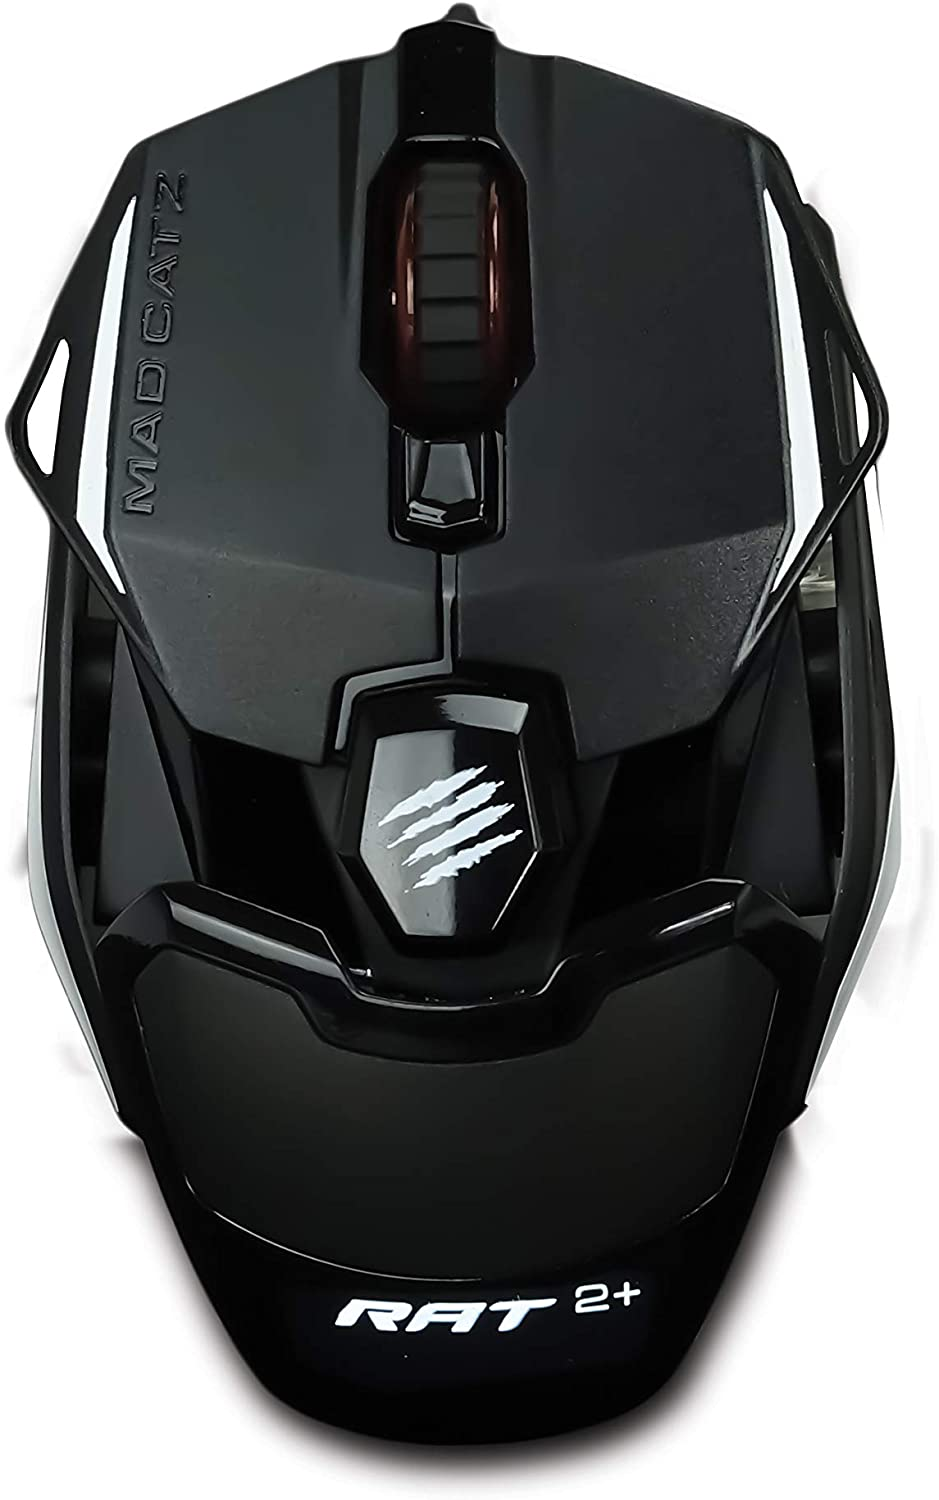 MOUSE MADCATZ AUTHENTIC R.A.T 2+ OPTICAL GAMING (5000DPI/BLACK)